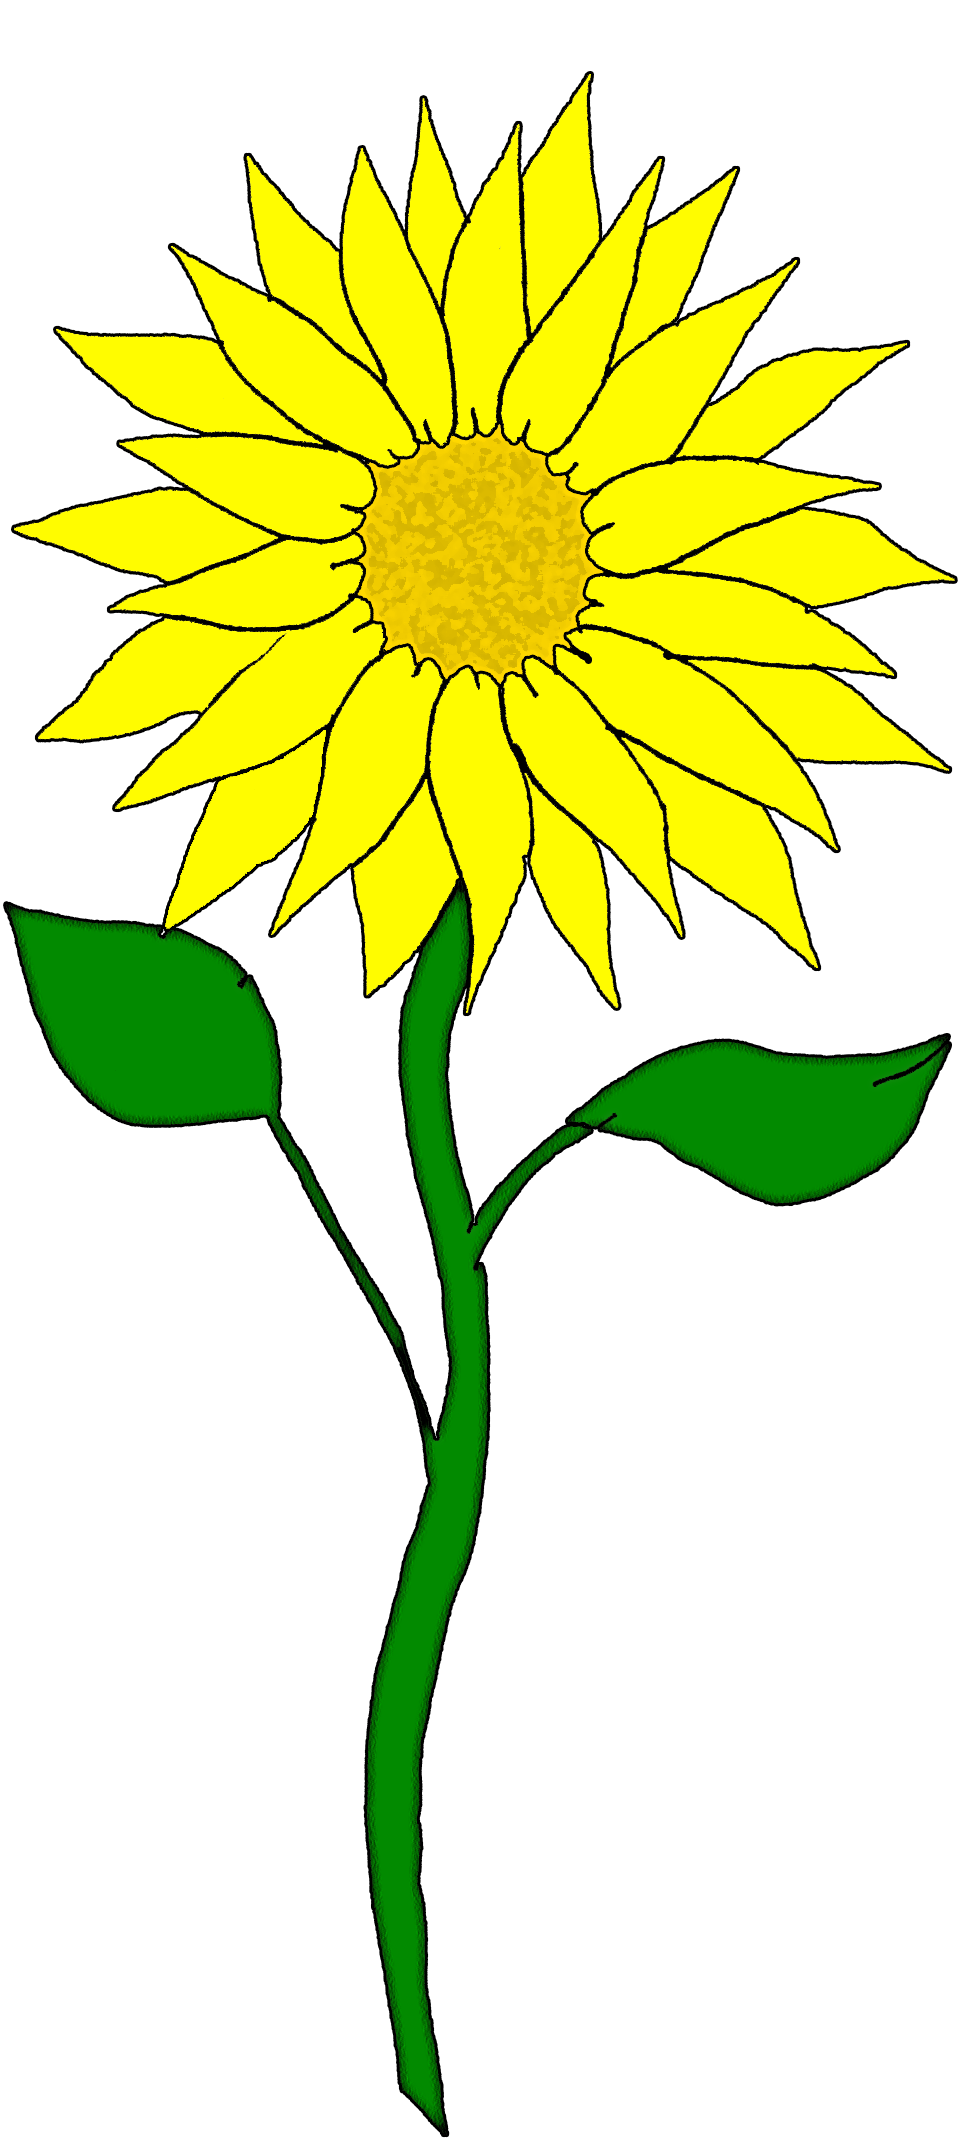 Sunflower transparent png images amp cliparts  About 1200